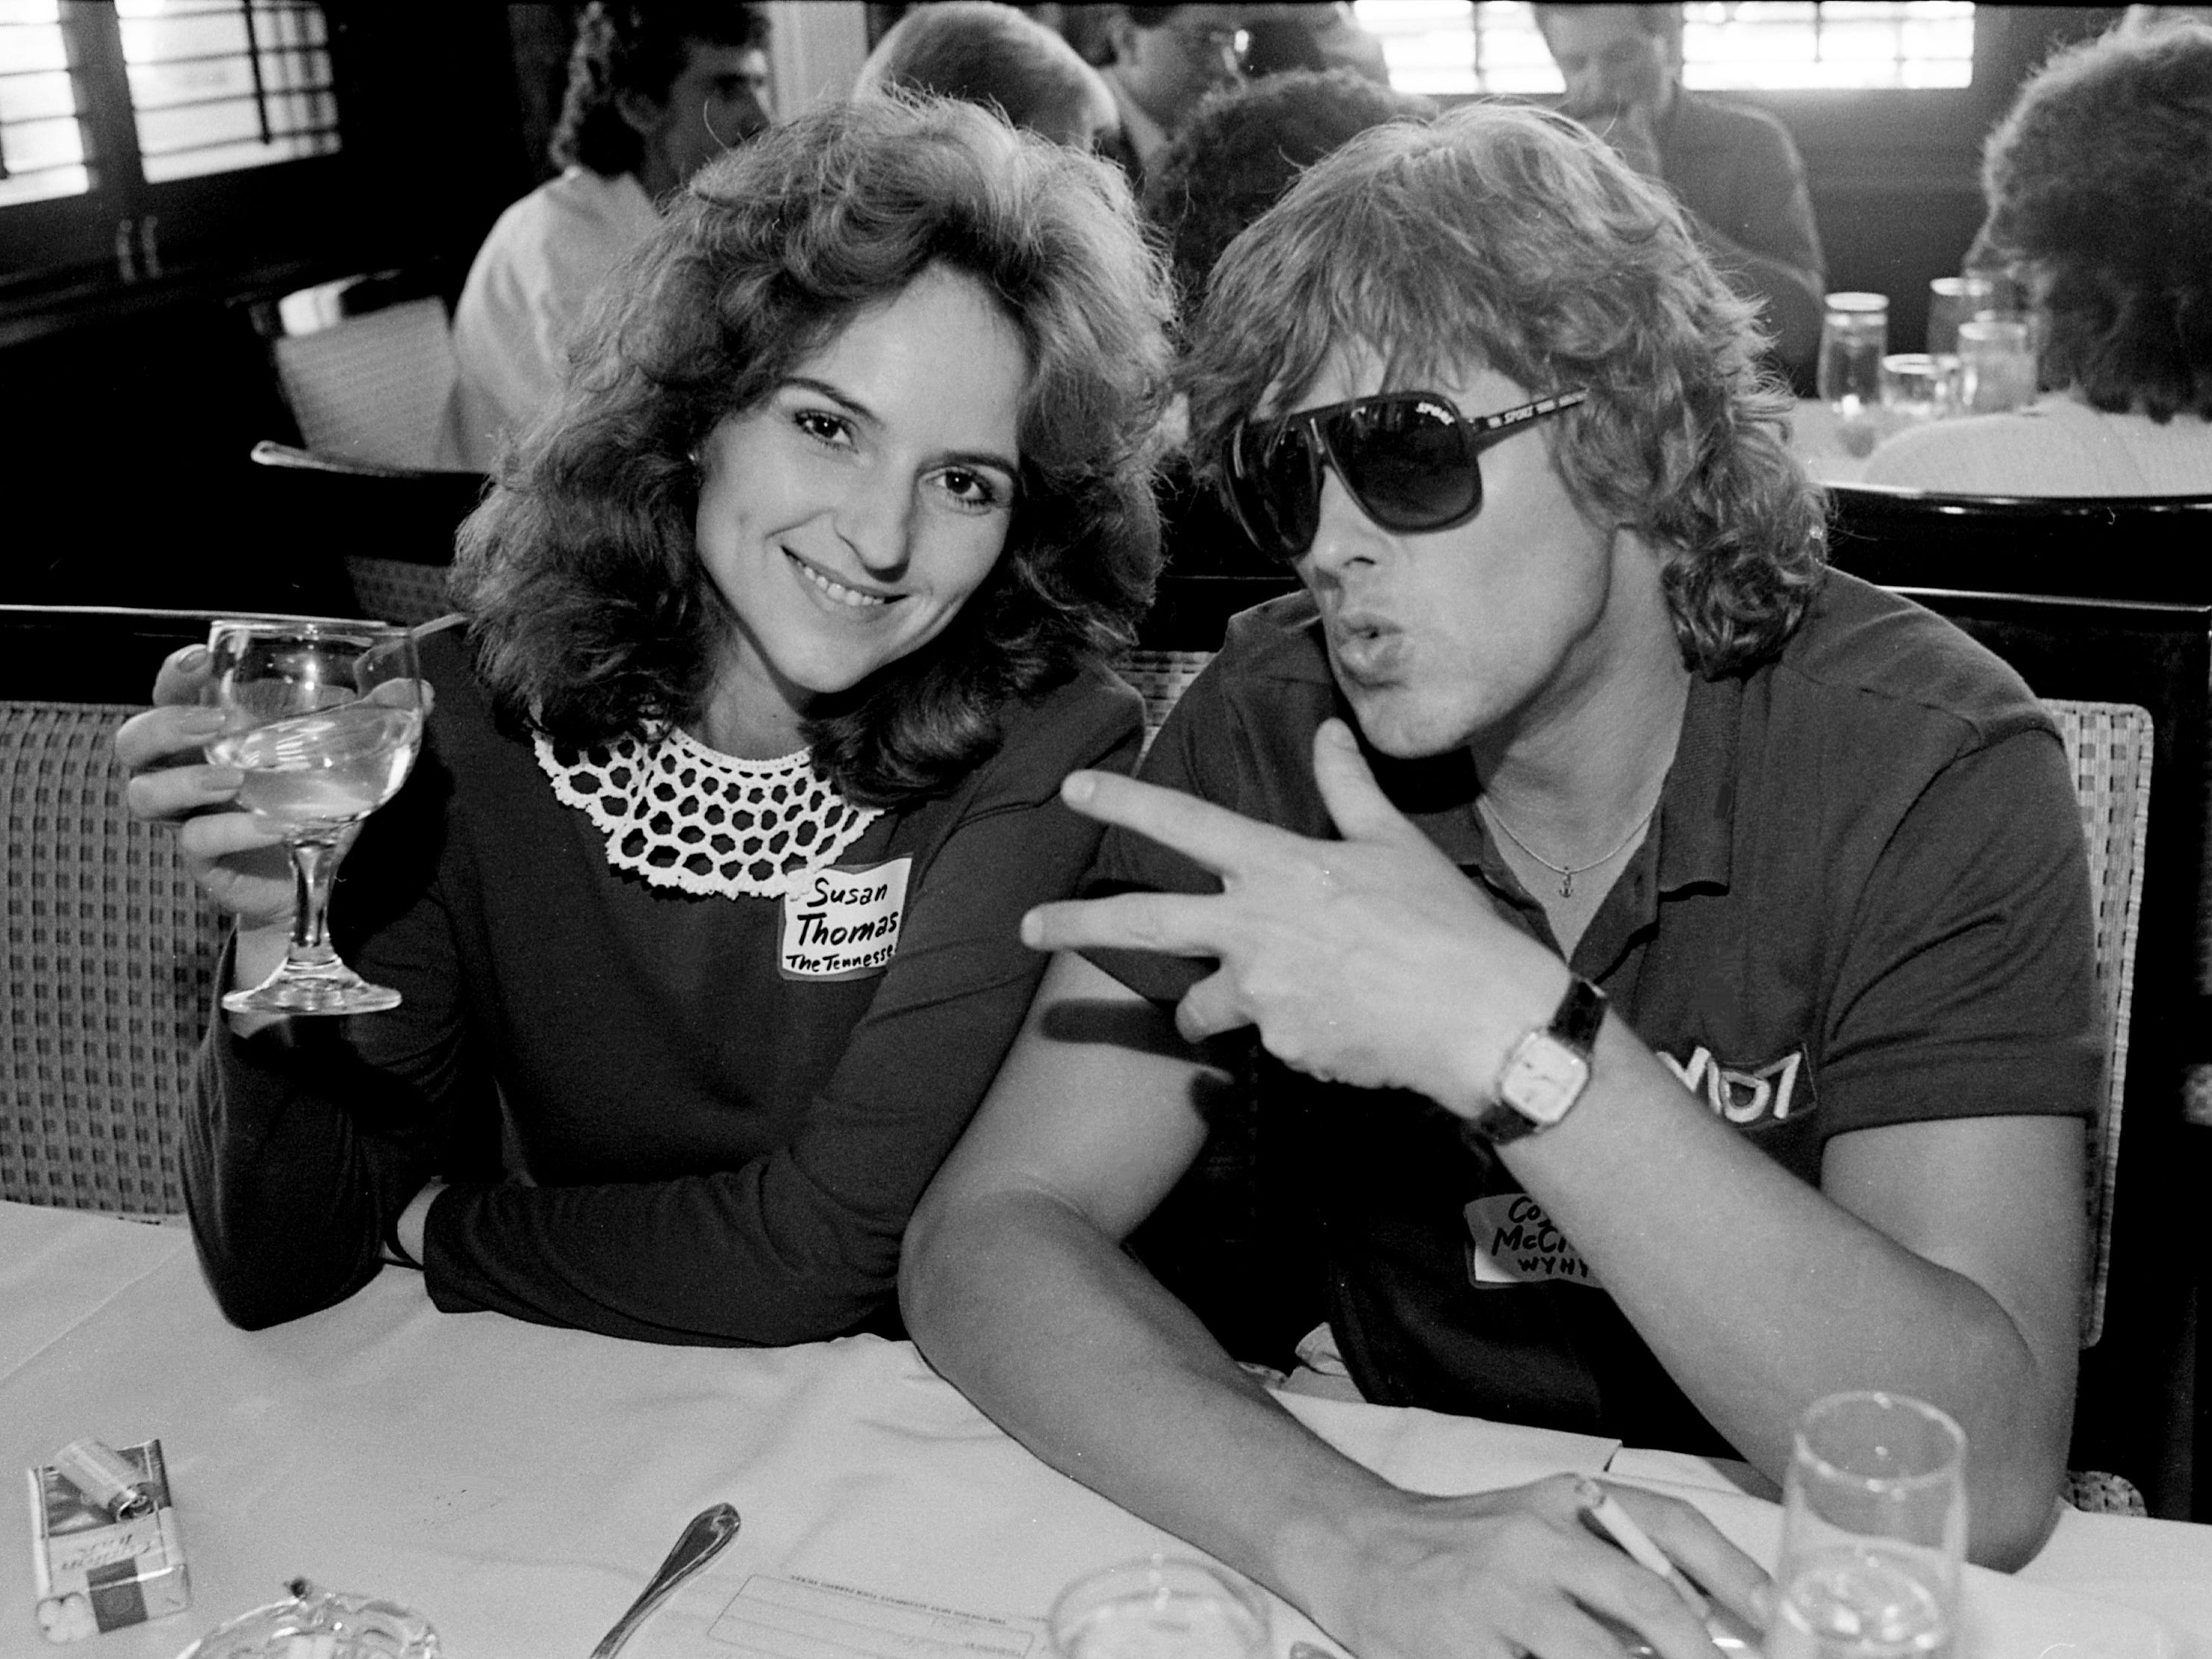 Coyote McCloud, right, of WYHY, is being cool with Susan Thomas, a reporter for The Tennessean, at Union Station for lunch Oct. 1, 1987, to hear details for this year's Tennessean disc jockey election.